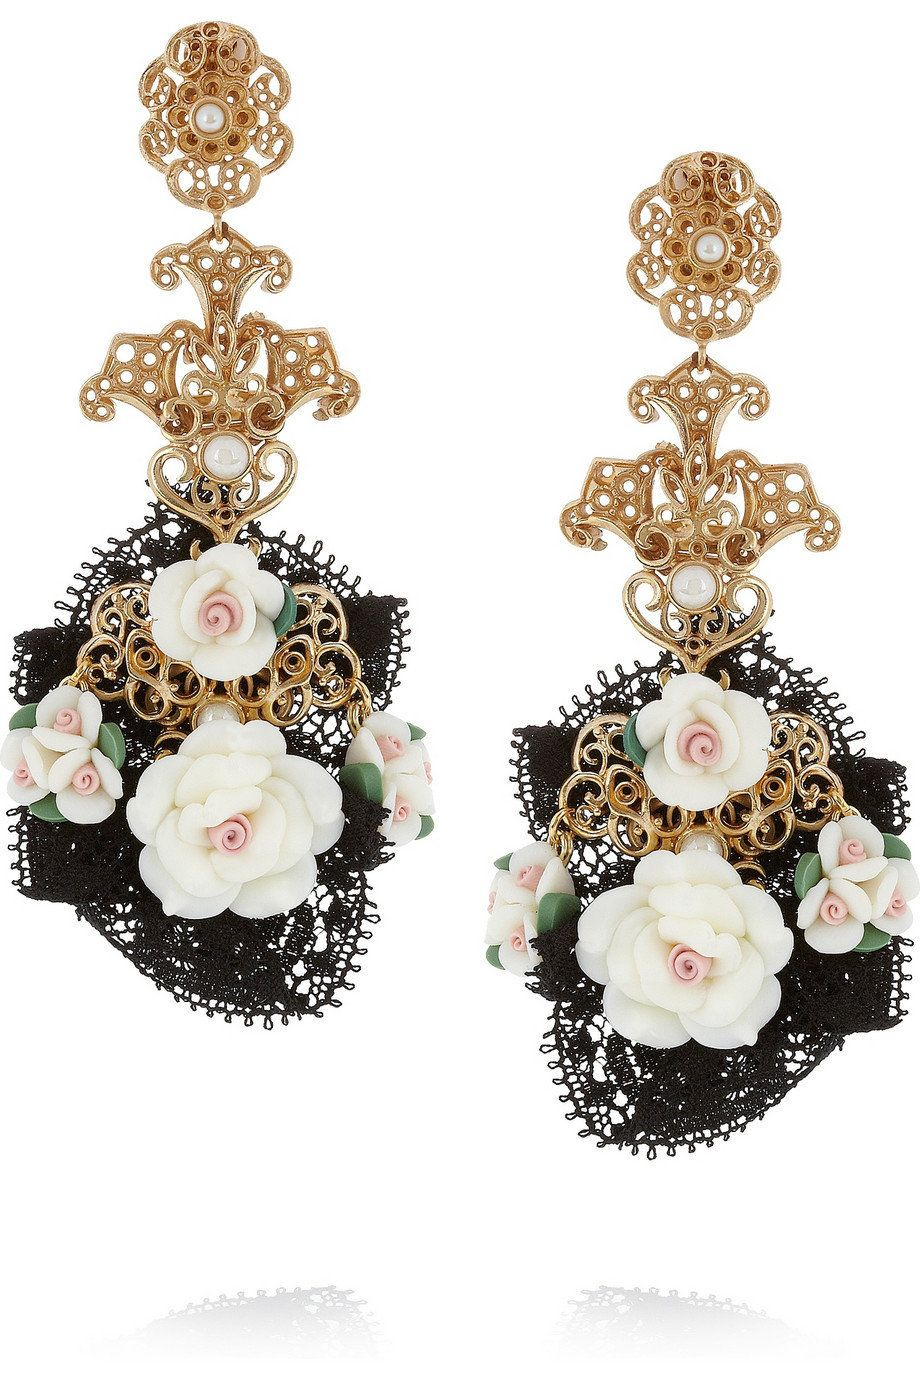 dolce & gabbana <3 | pick | pinterest | jewel, floral style and